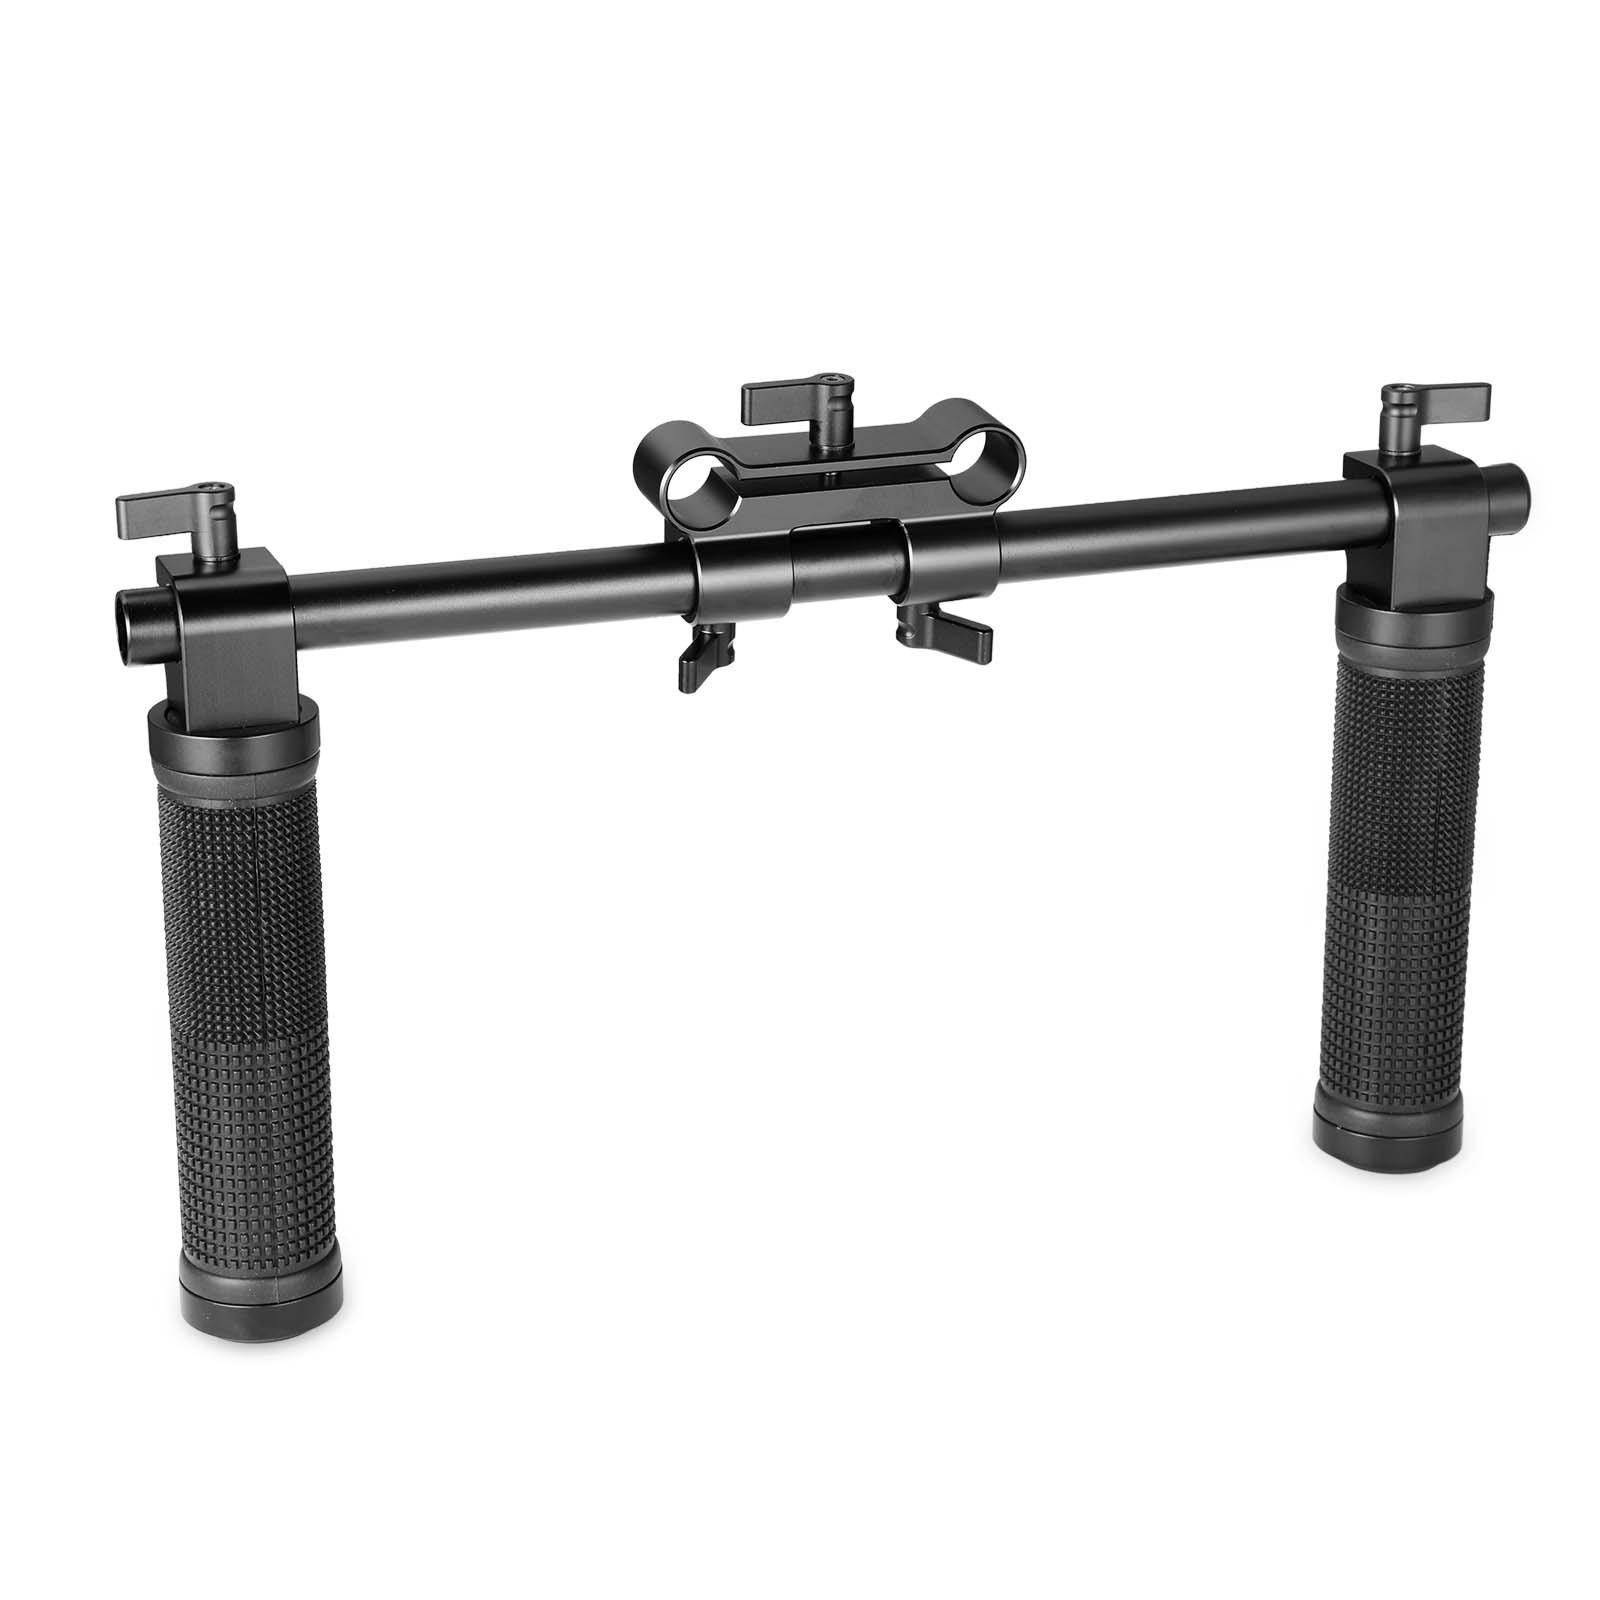 SMALLRIG 998 15mm Rod Rail Handle Kit for Shoulder Suppor...